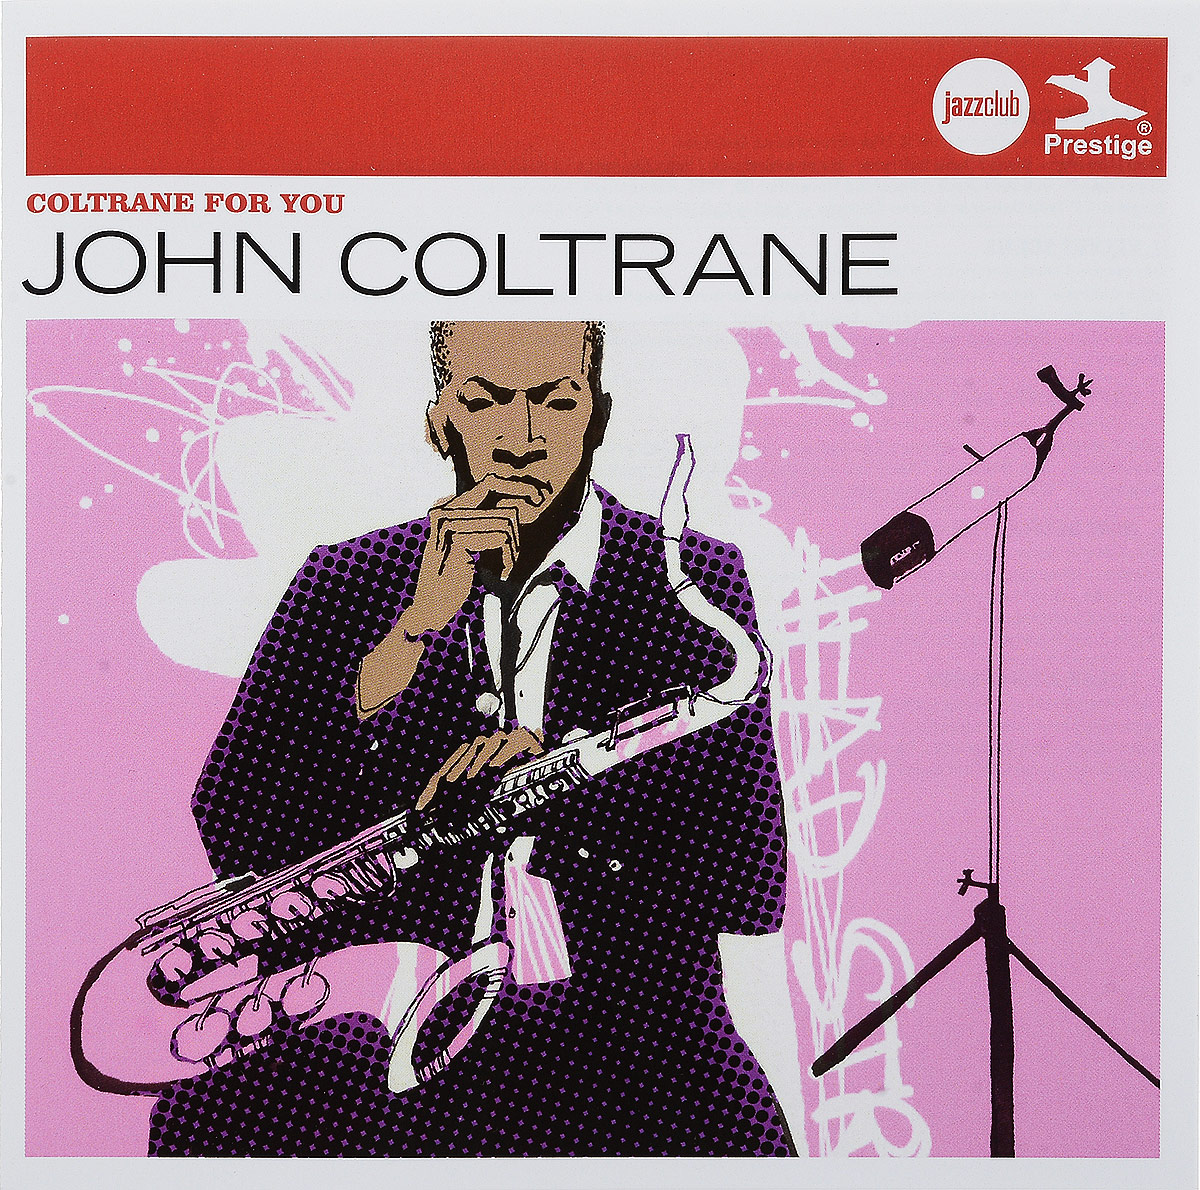 Джон Колтрейн John Coltrane. Coltrane For You джон колтрейн маккой тайнер стив дэвис элвин джонс john coltrane my favorite things lp